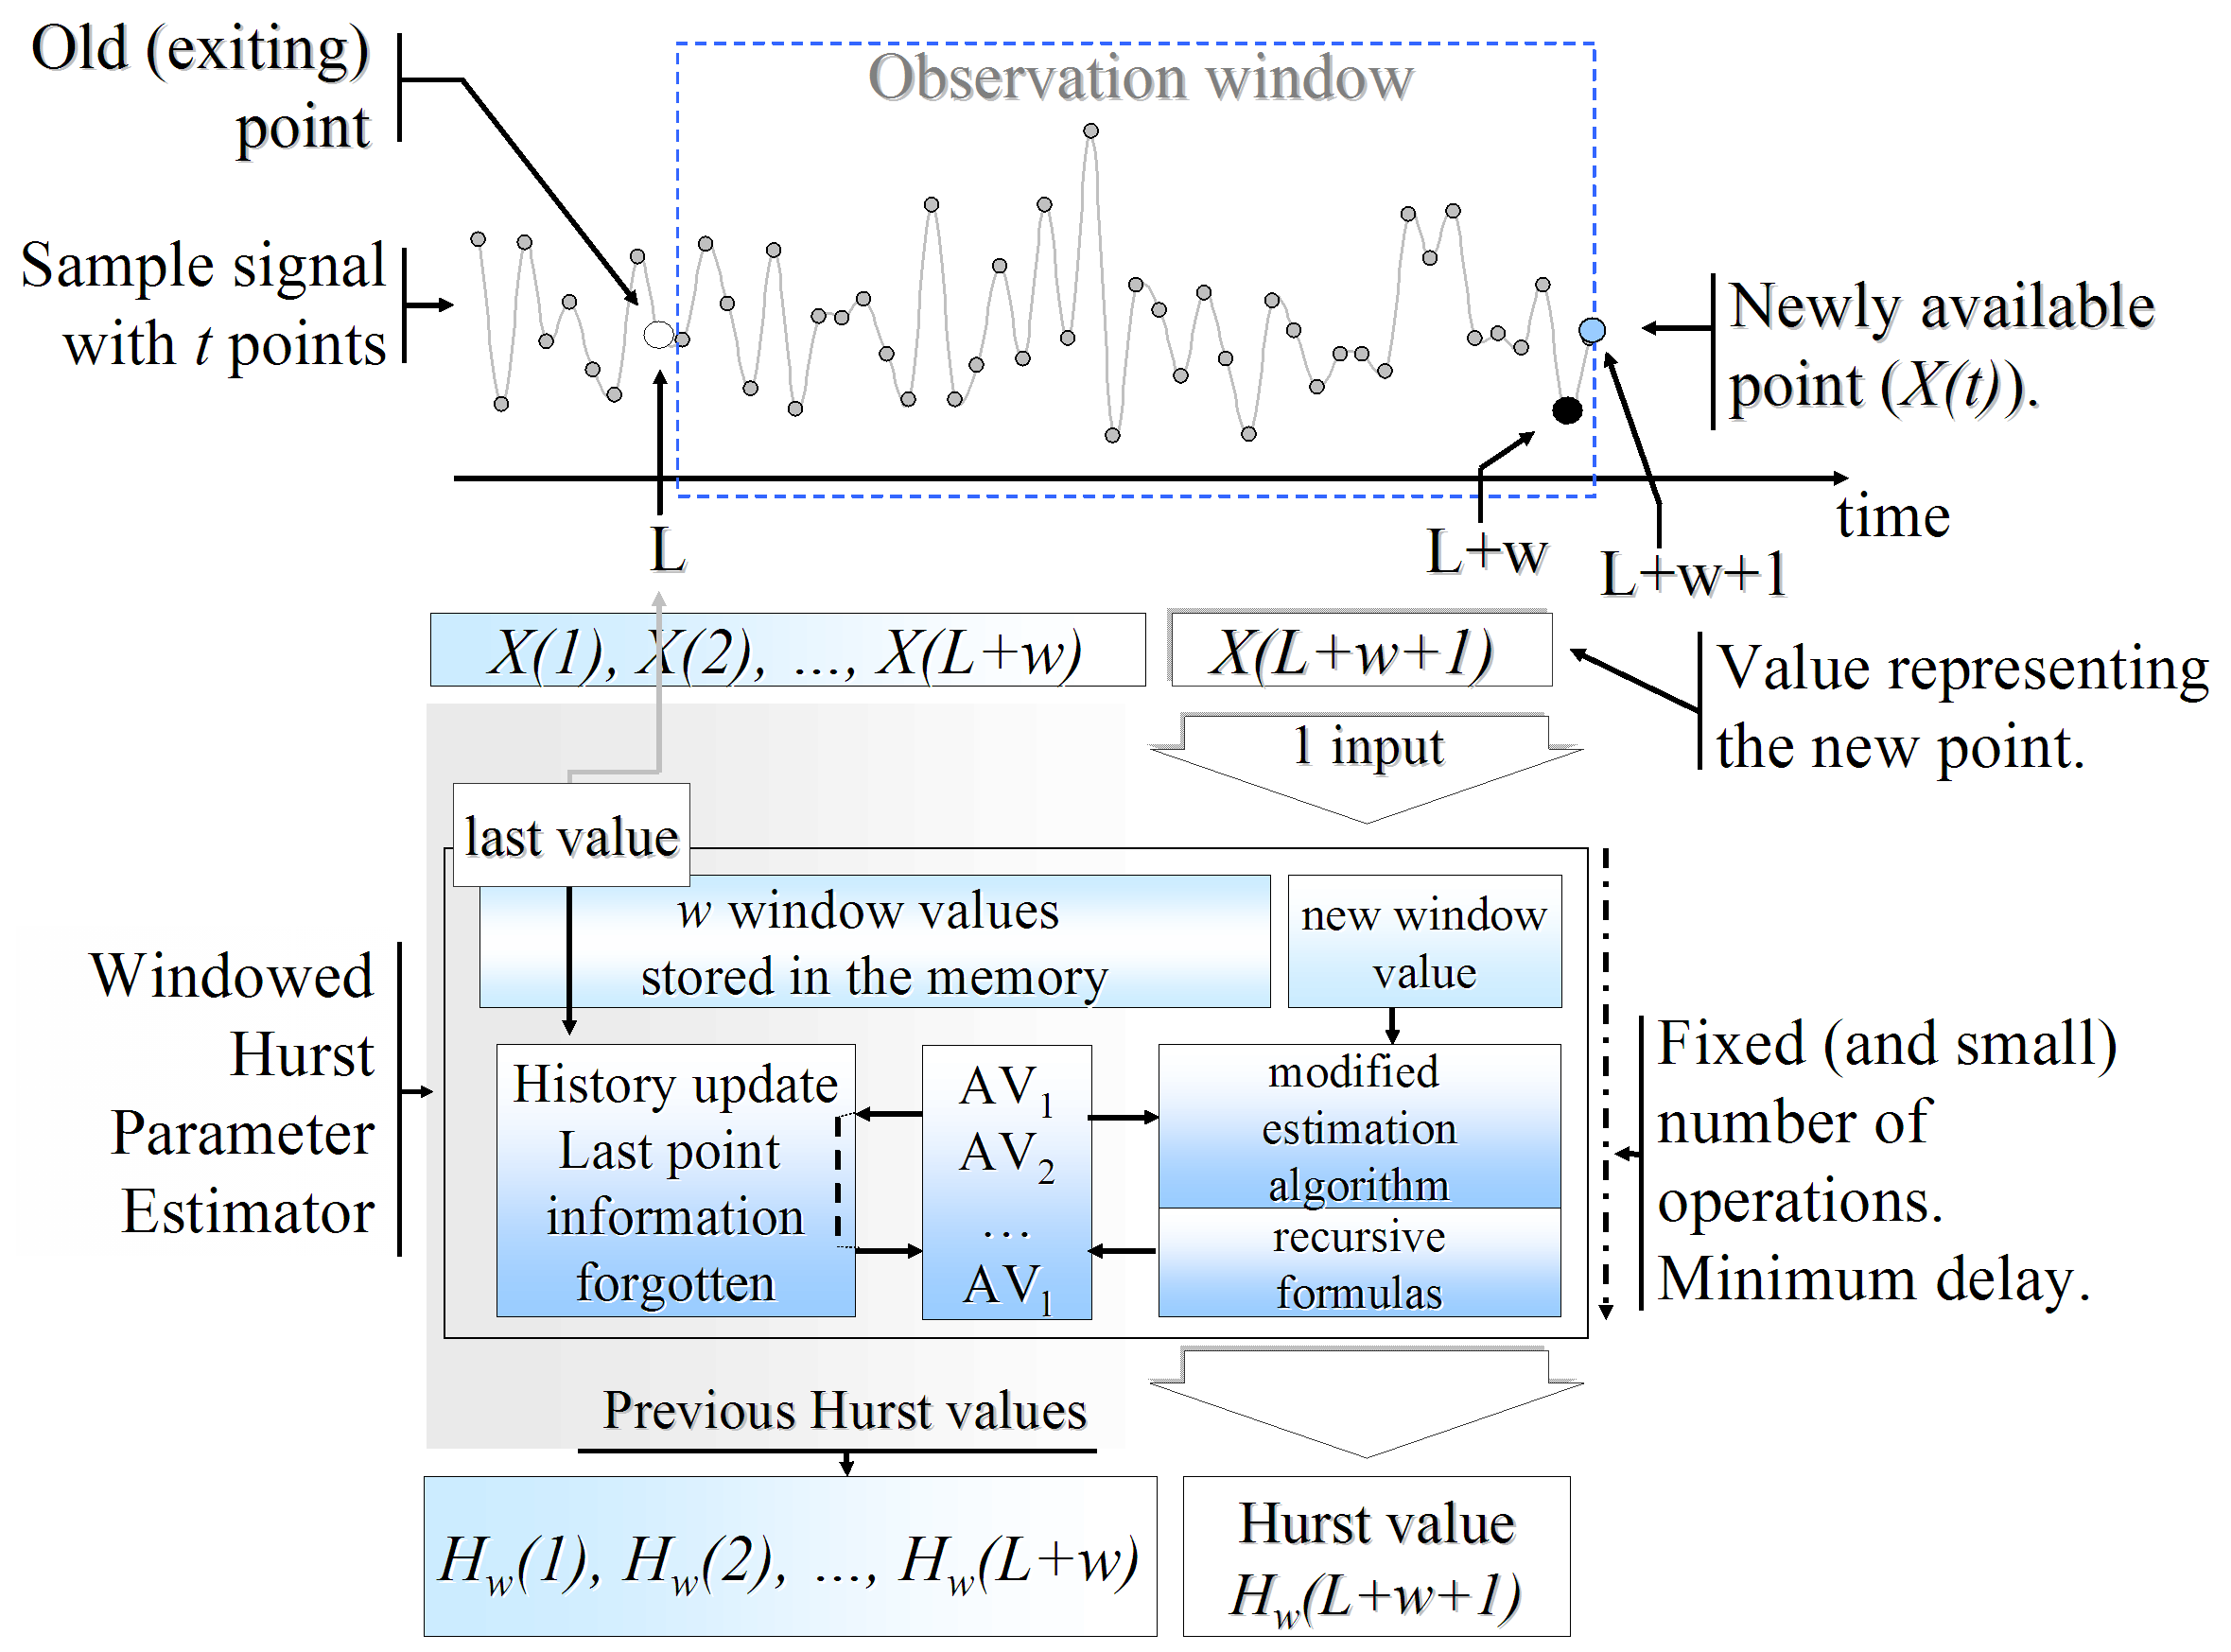 Figure 3.3: Step-by-step Hurst parameter estimation using a windowed-modified method. Every time a new point of the series becomes available, it is fed to the estimator as its only input.